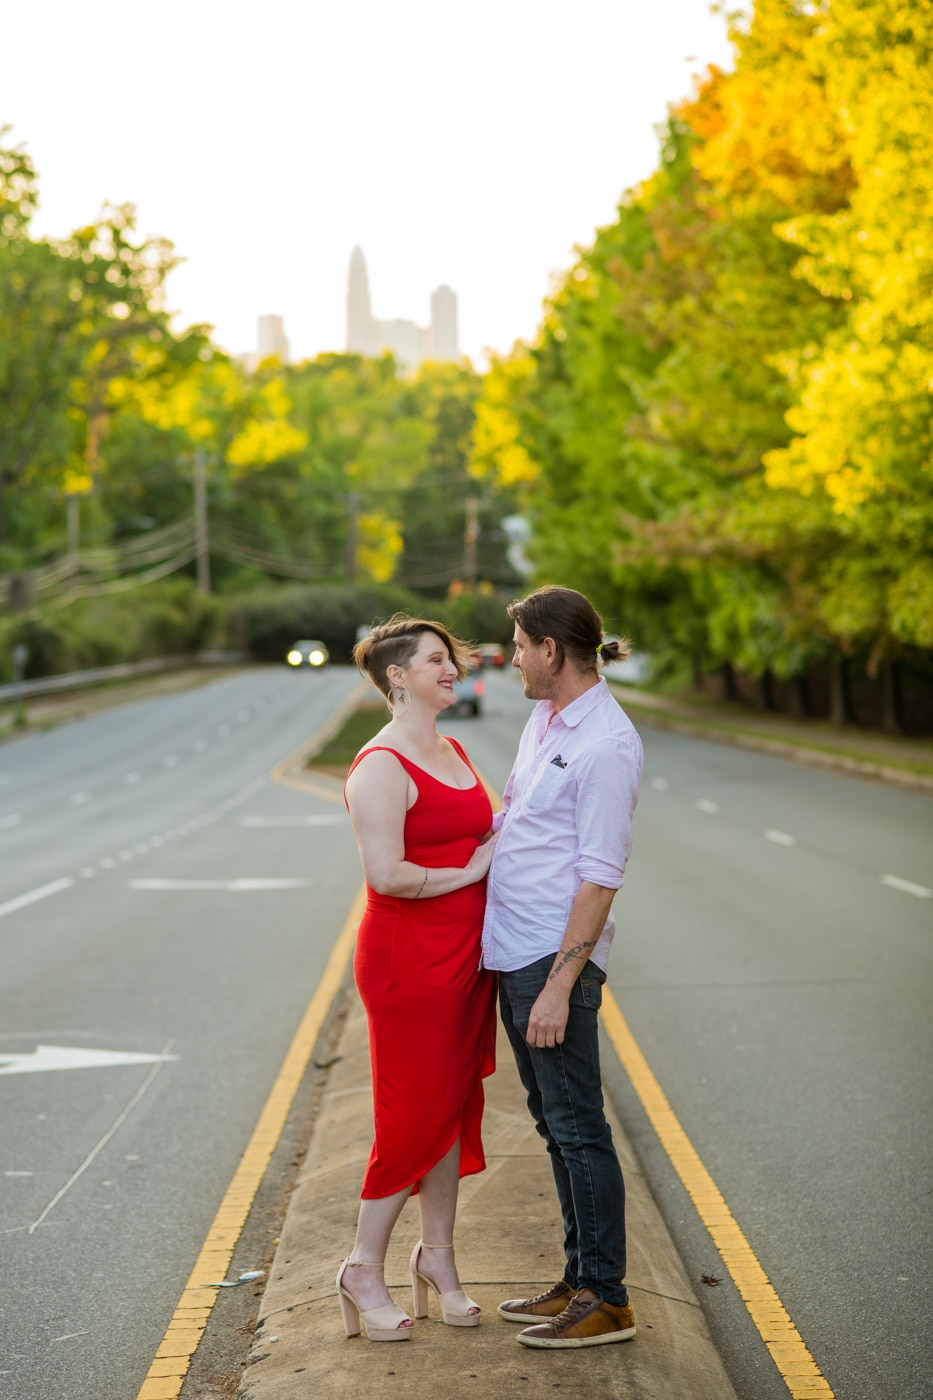 engagement portraits on street in Charlotte NC with woman in red dress